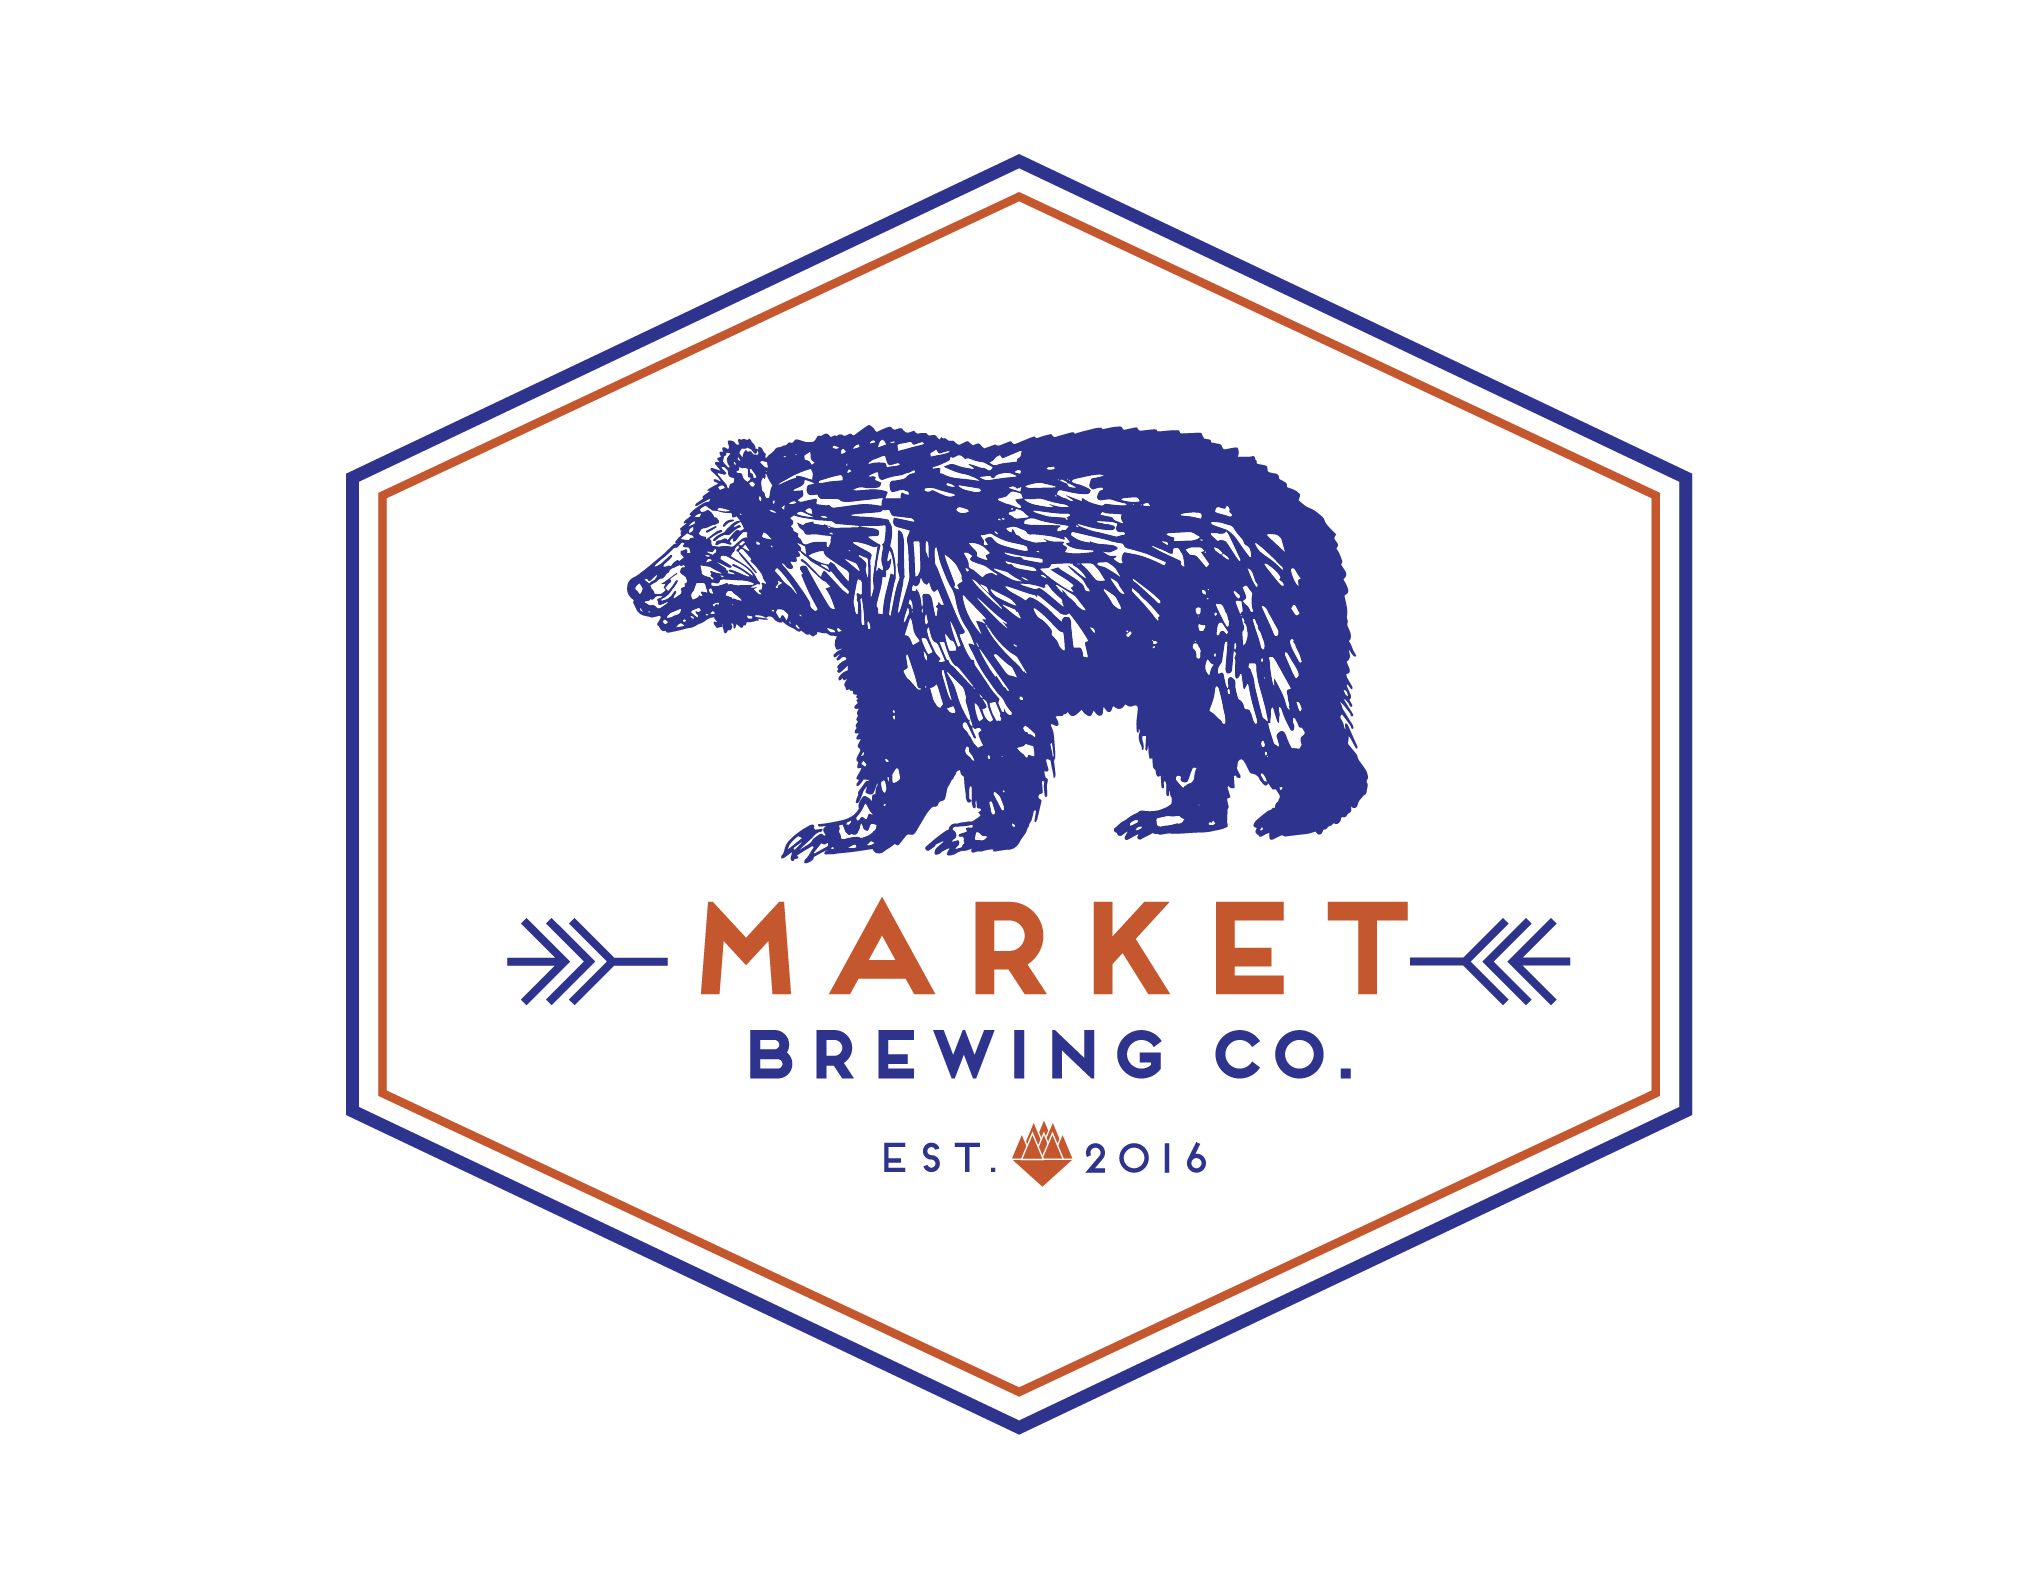 image of market brewing co. logo